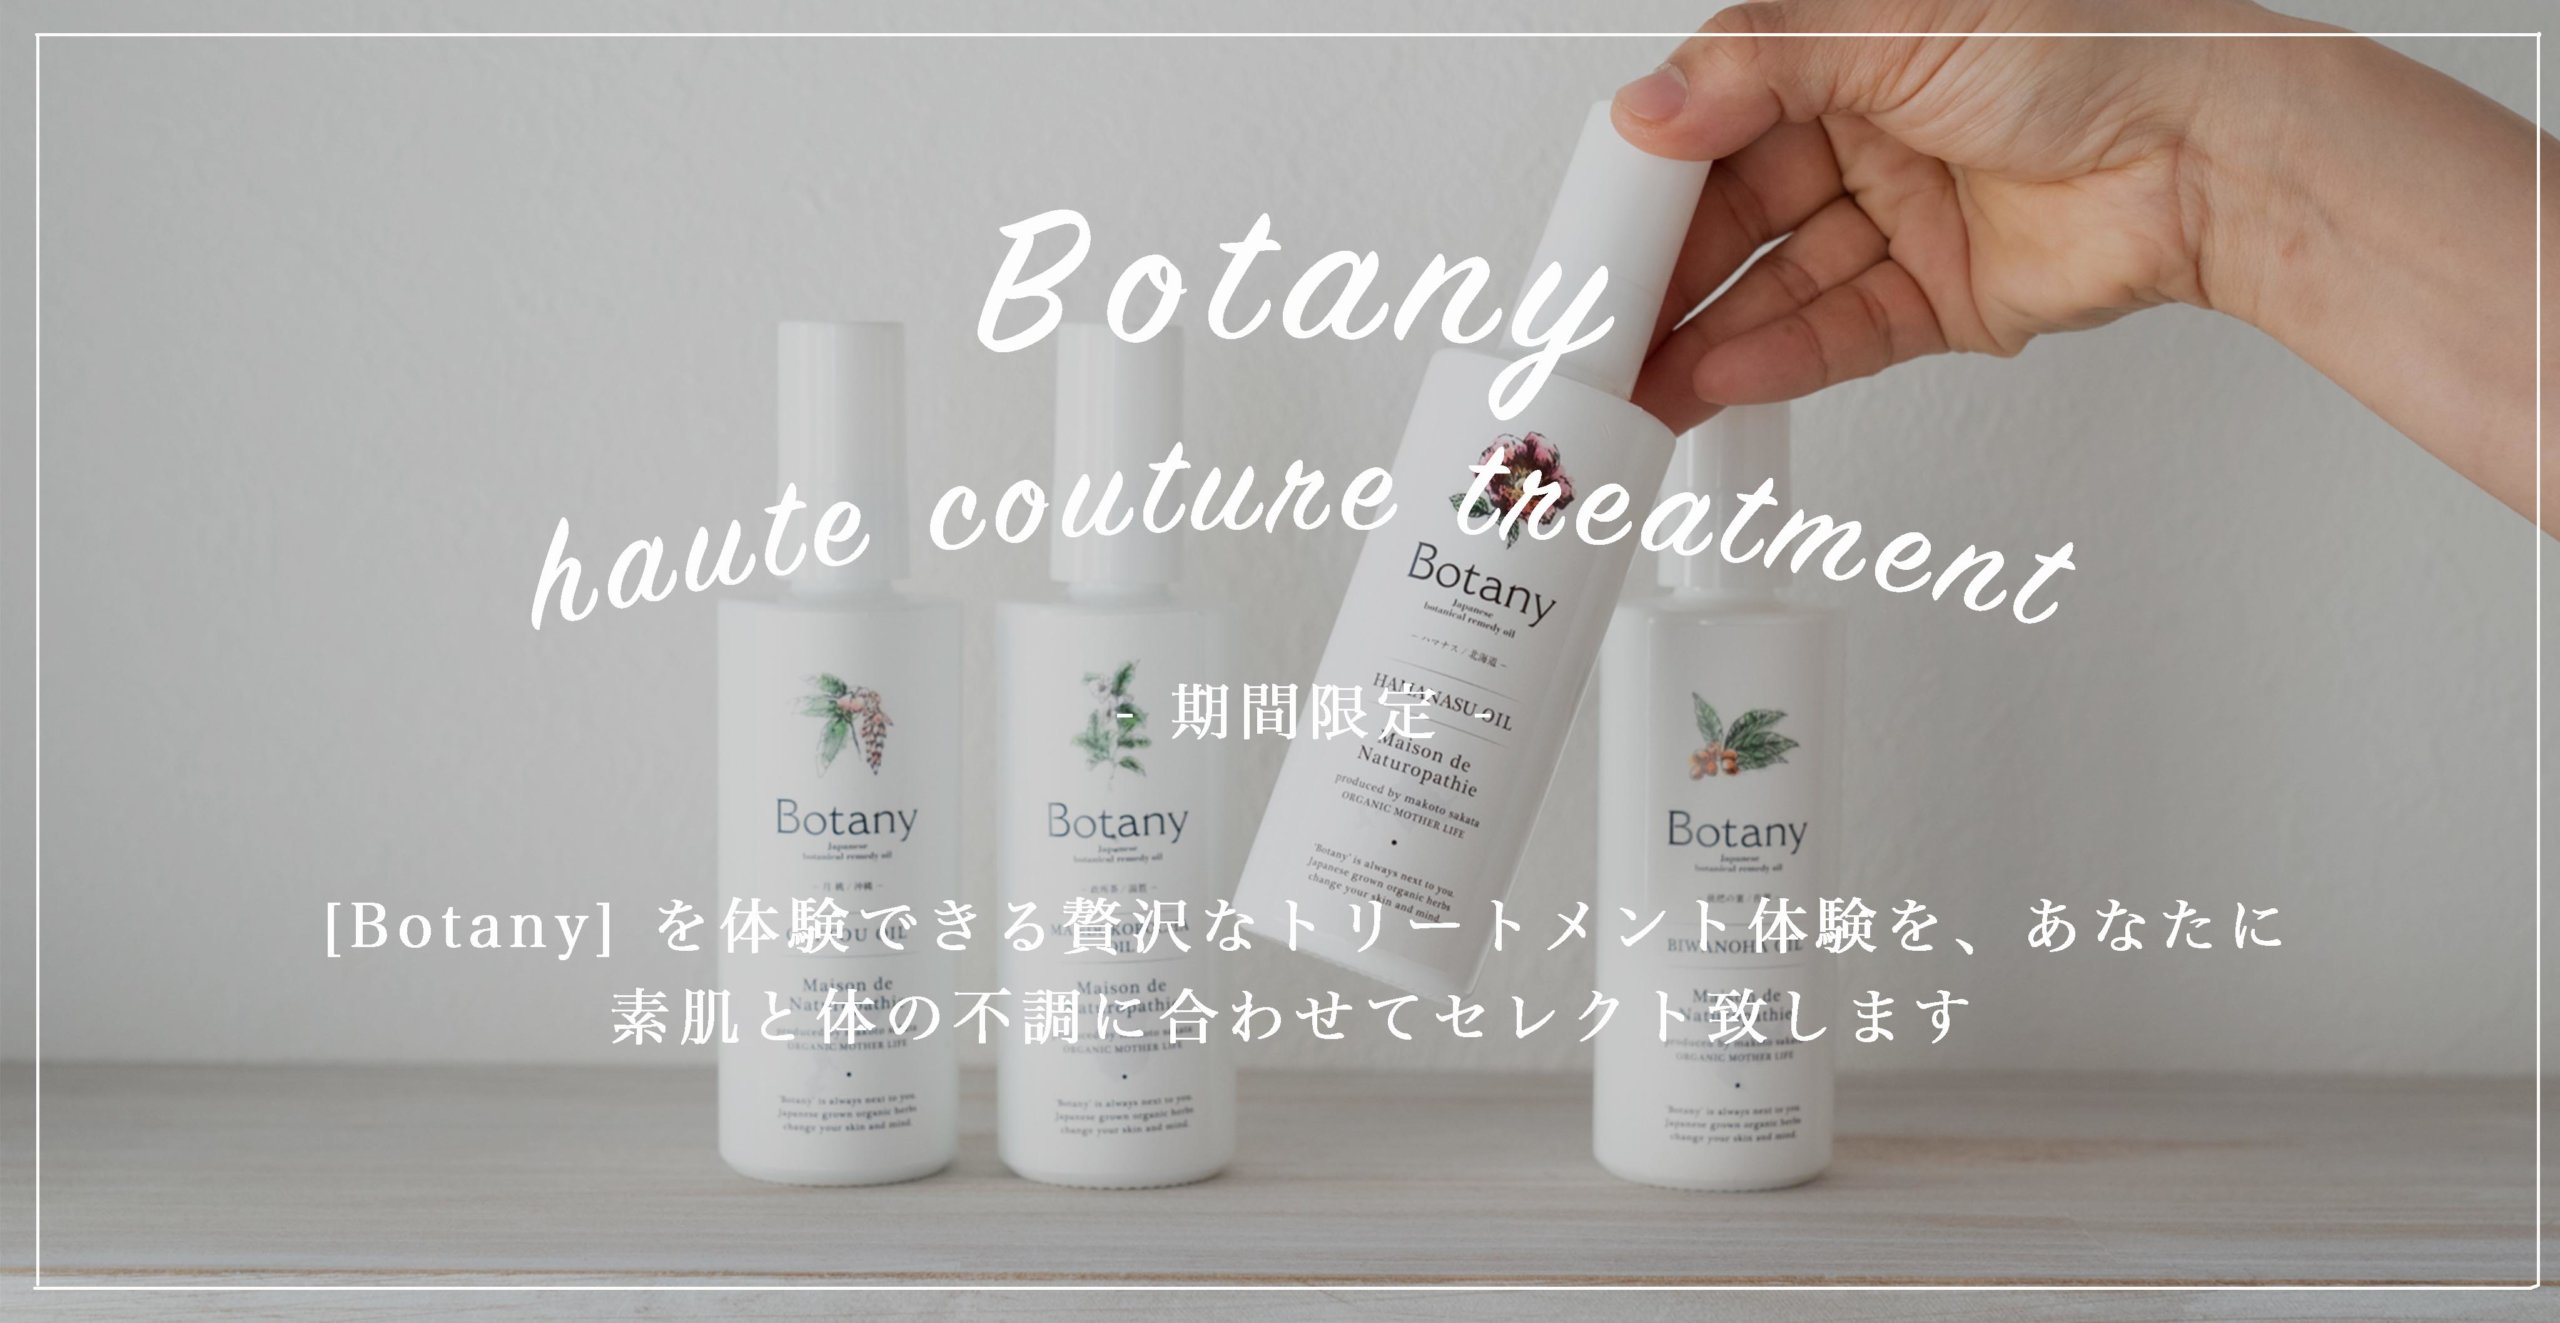 Botany haute couture treatment